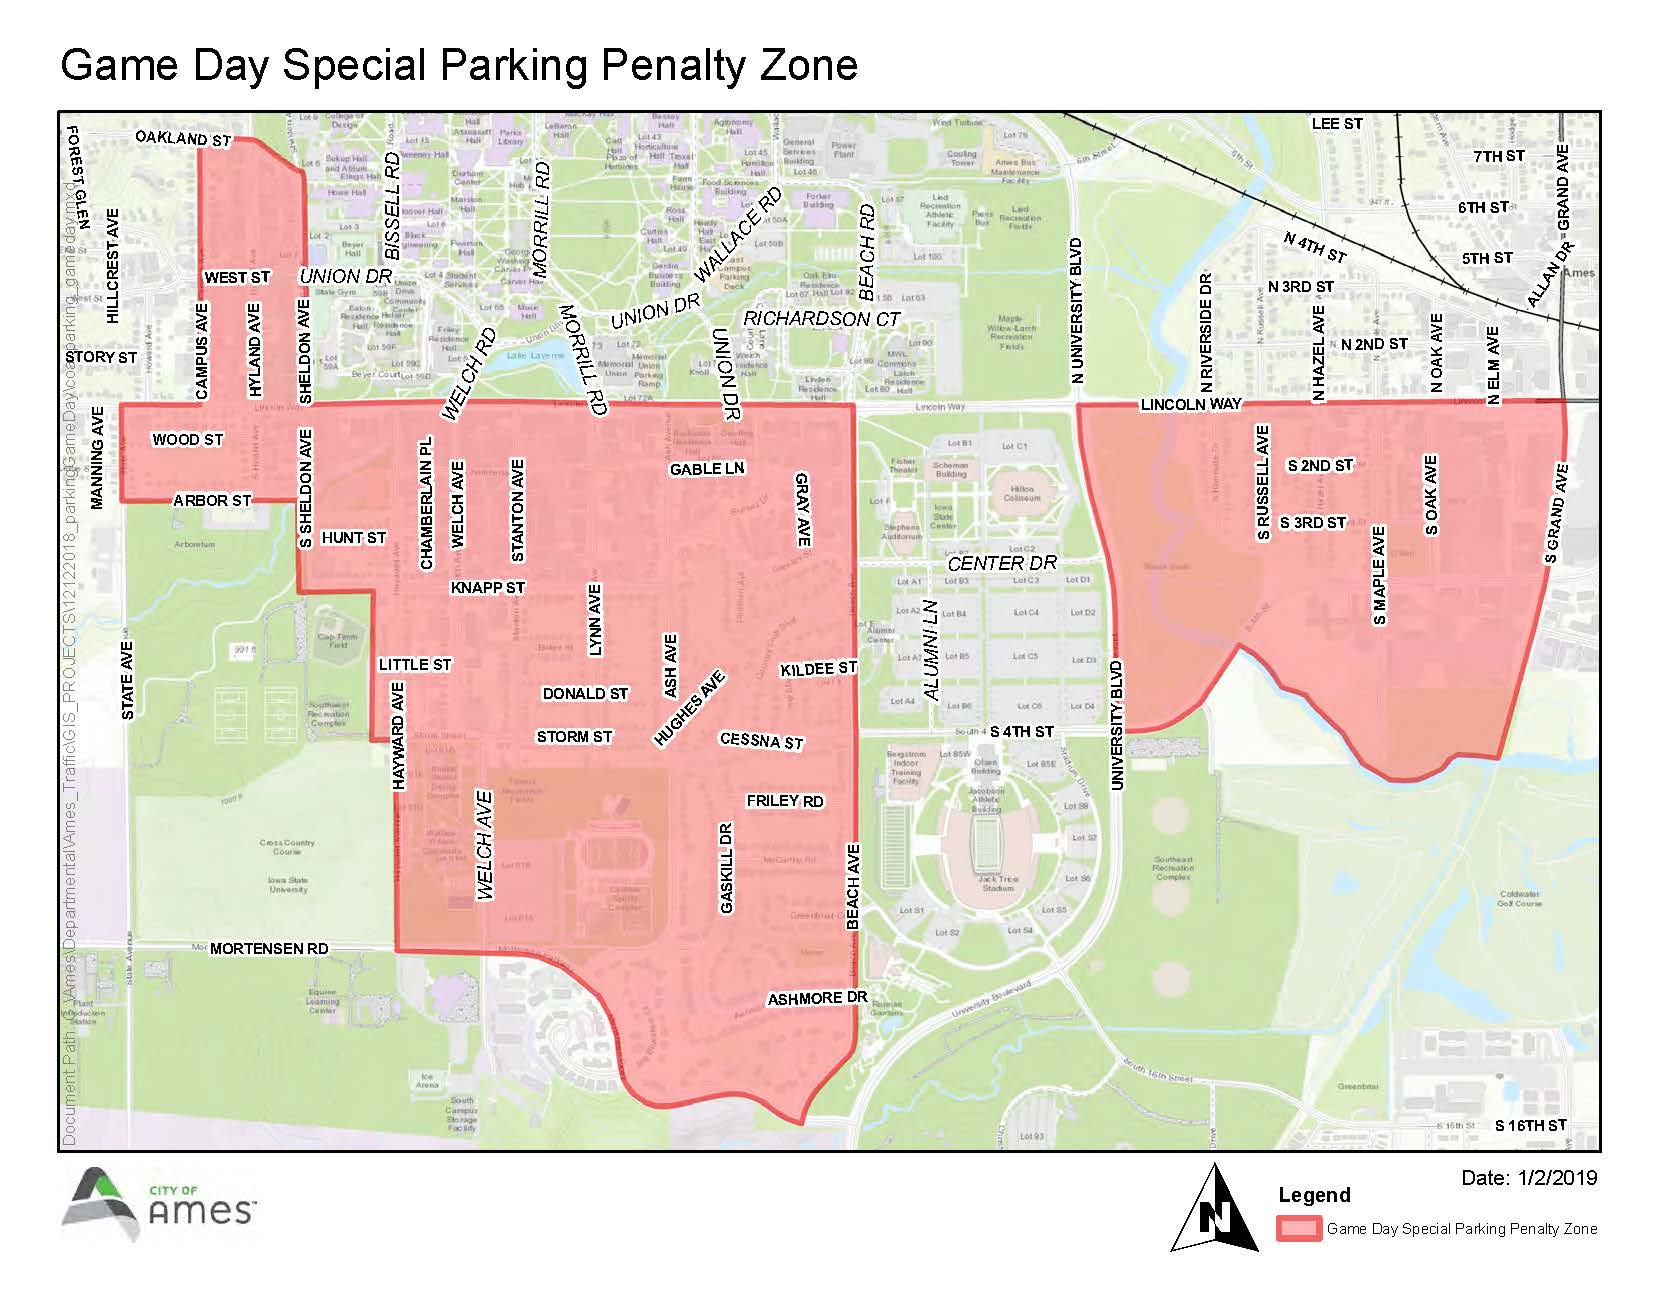 Game Day Special Parking Penalty Zone map